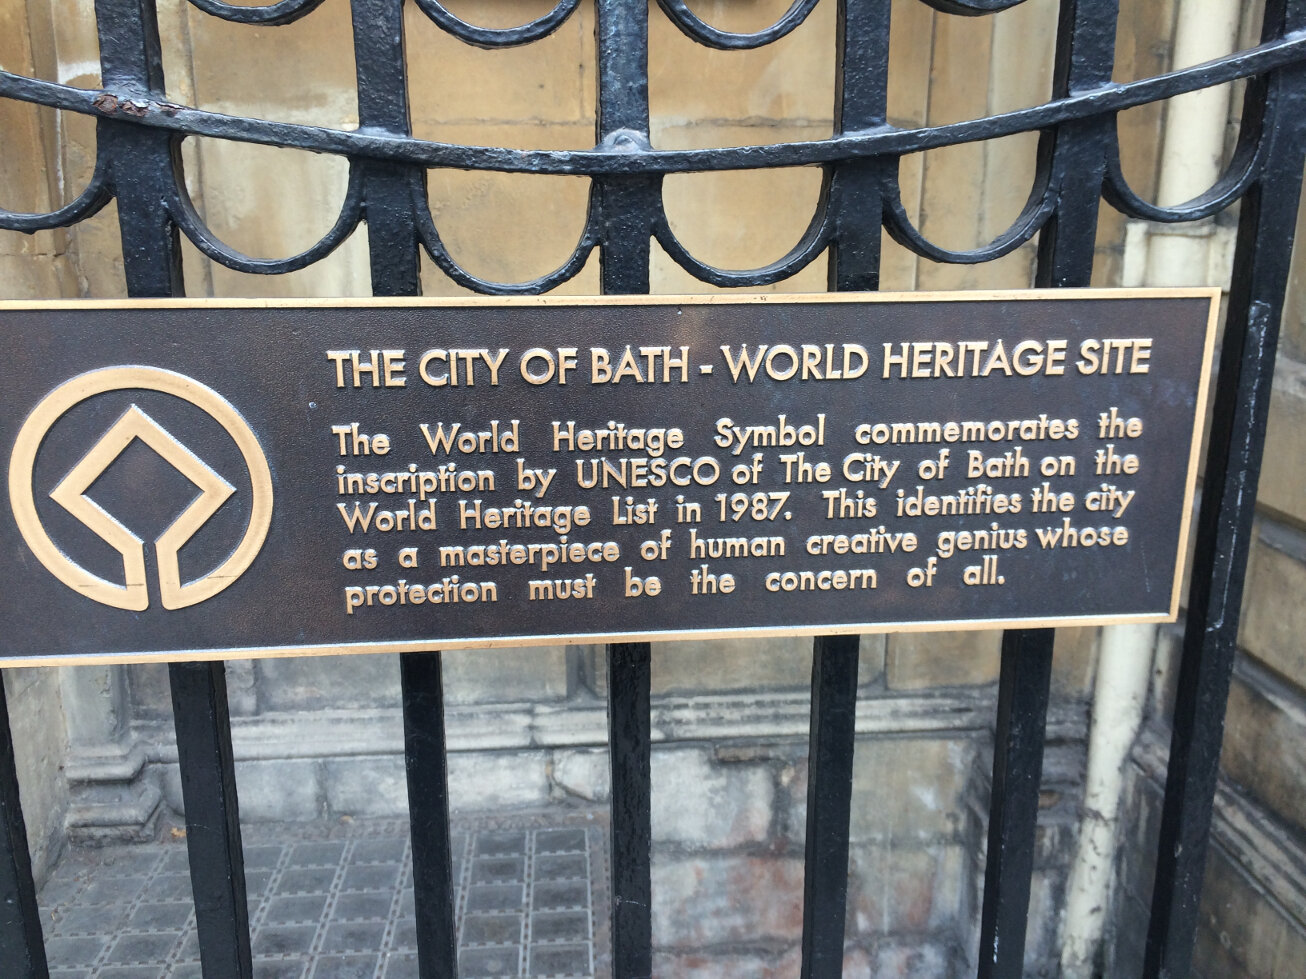 Bath Walks on the Legacies of Slavery